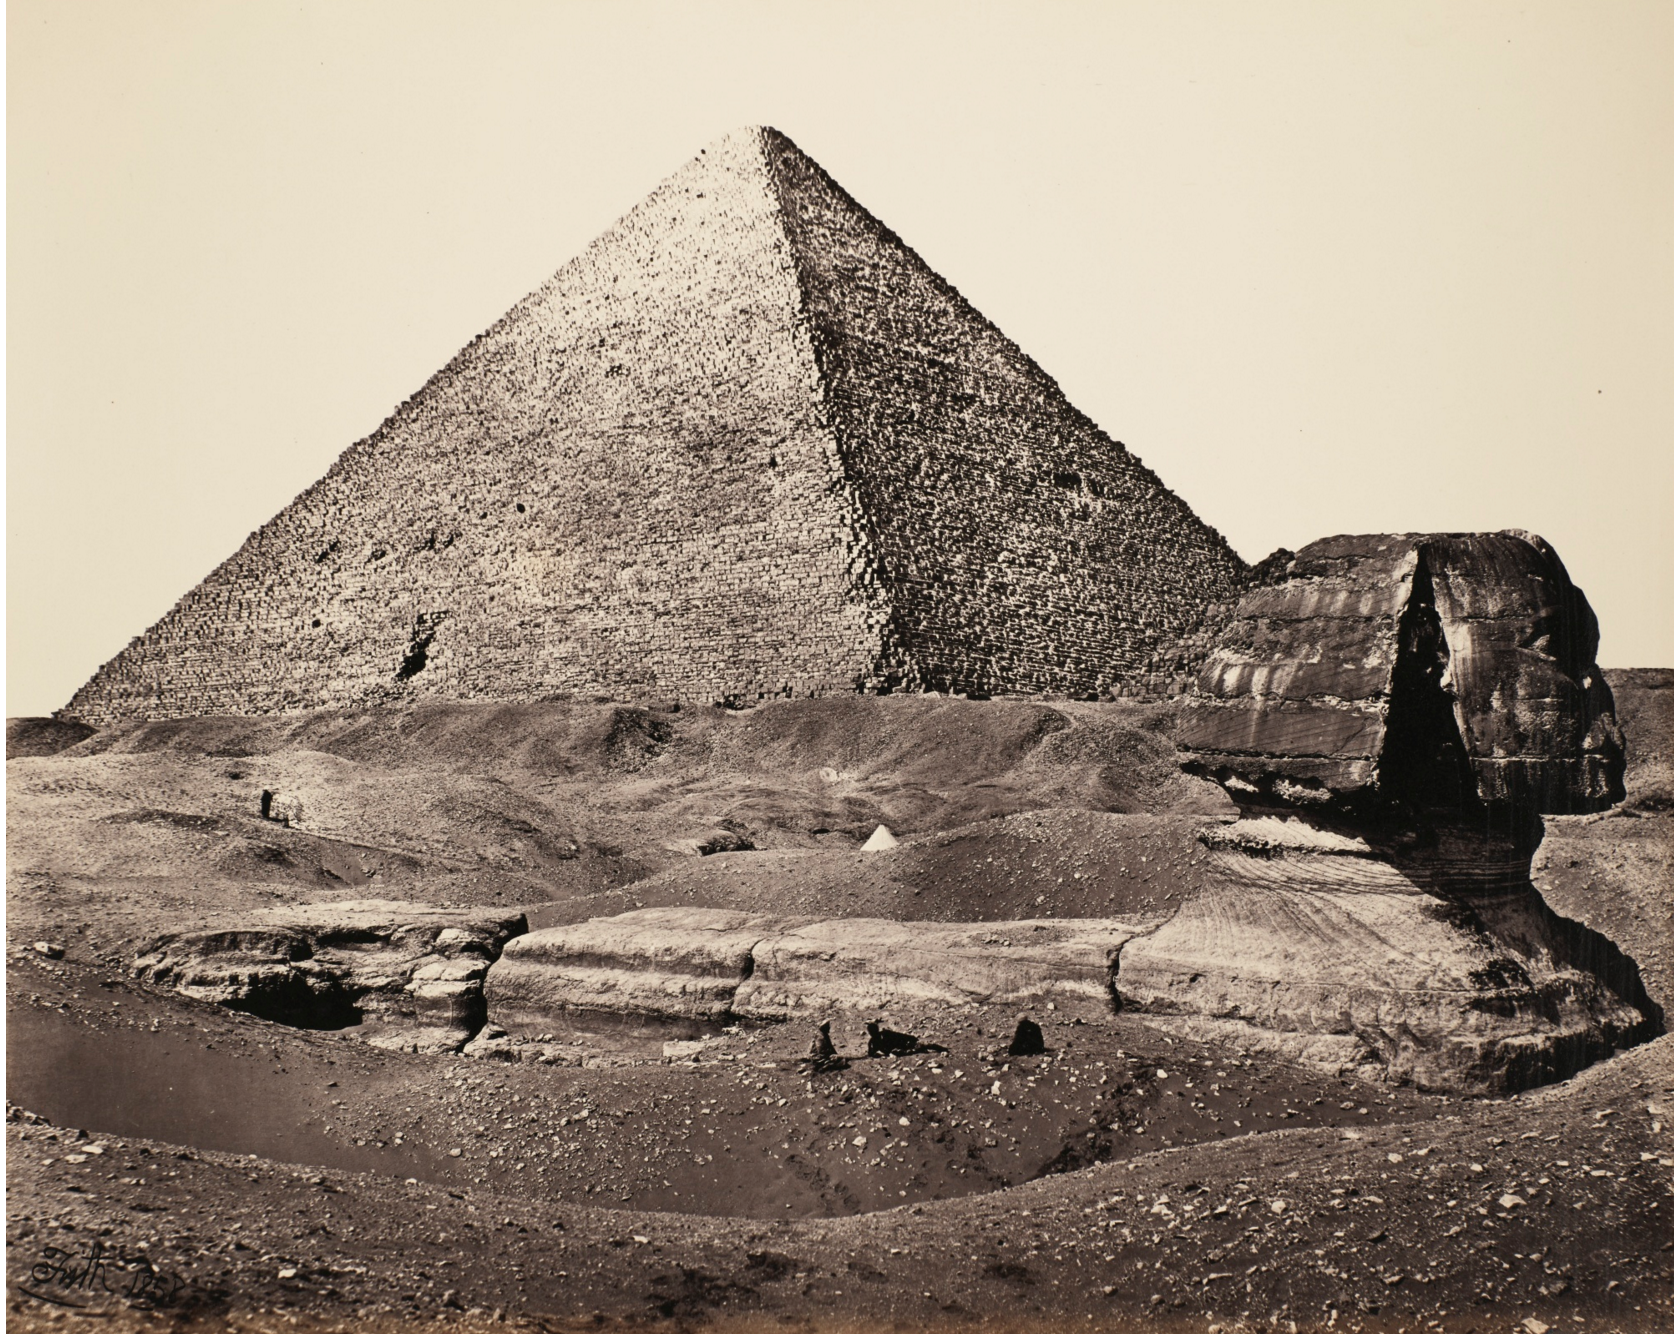 Pin By Nadezhda Alexander On Things To Draw Ancient Egypt Egypt Egyptian Pyramids